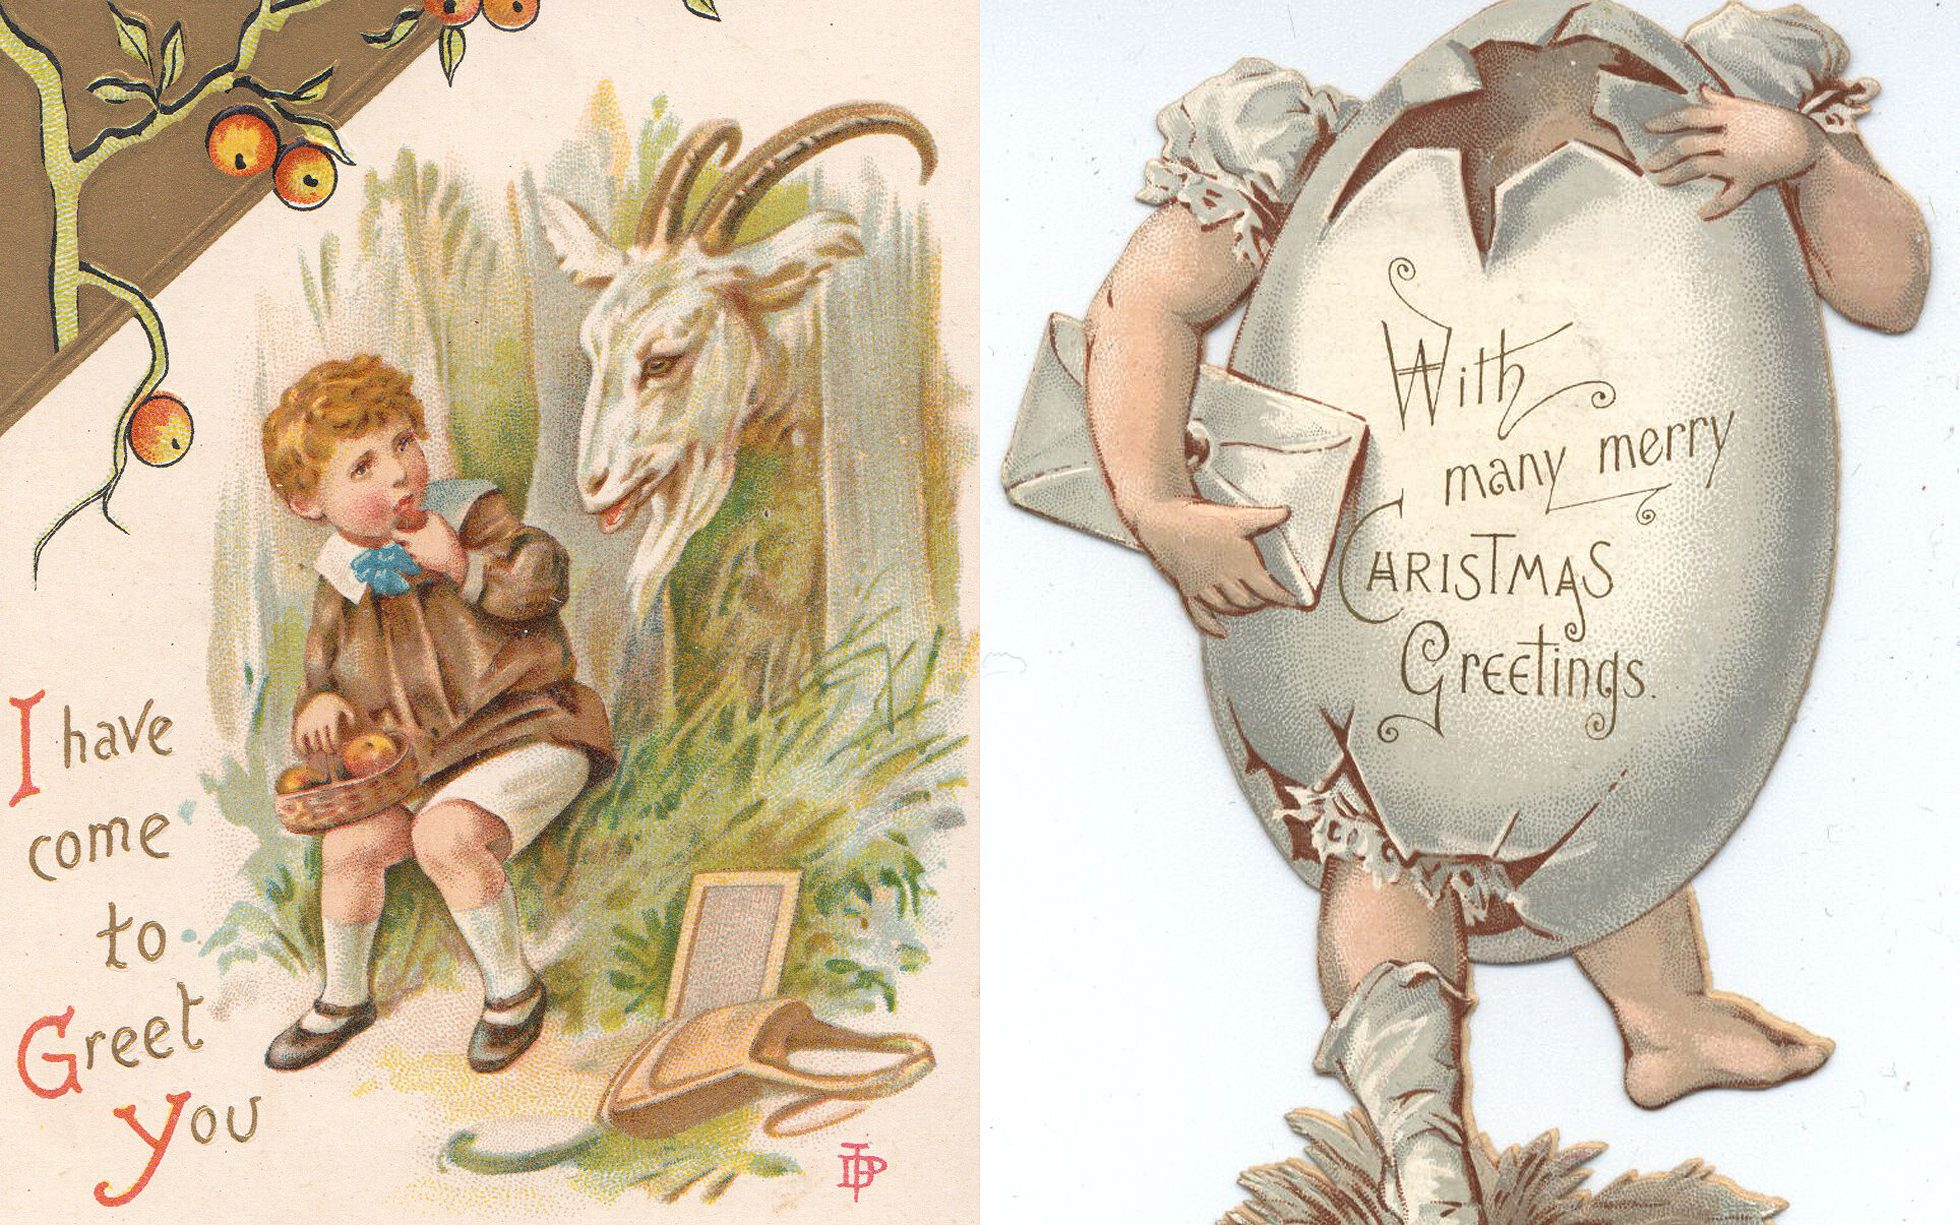 21 Victorian Christmas Cards That Suggest Our Ancestors